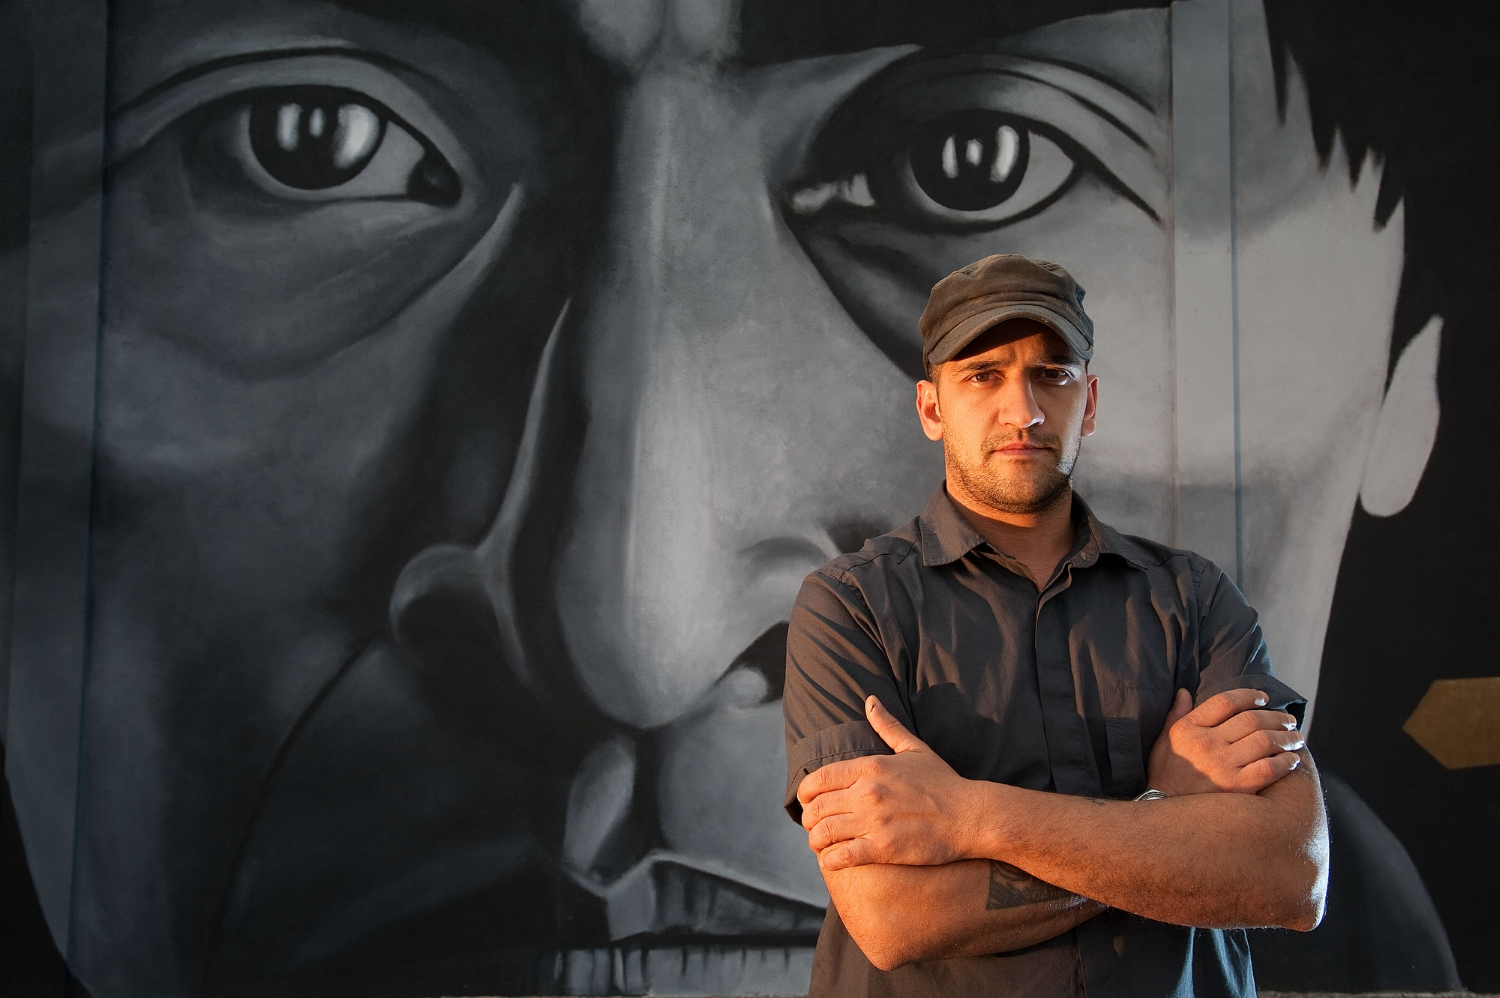 Mural artist Alex Forster stands in front of his artwork at 24th Street and Broadway in Sacramento on Monday, April18, 2011.